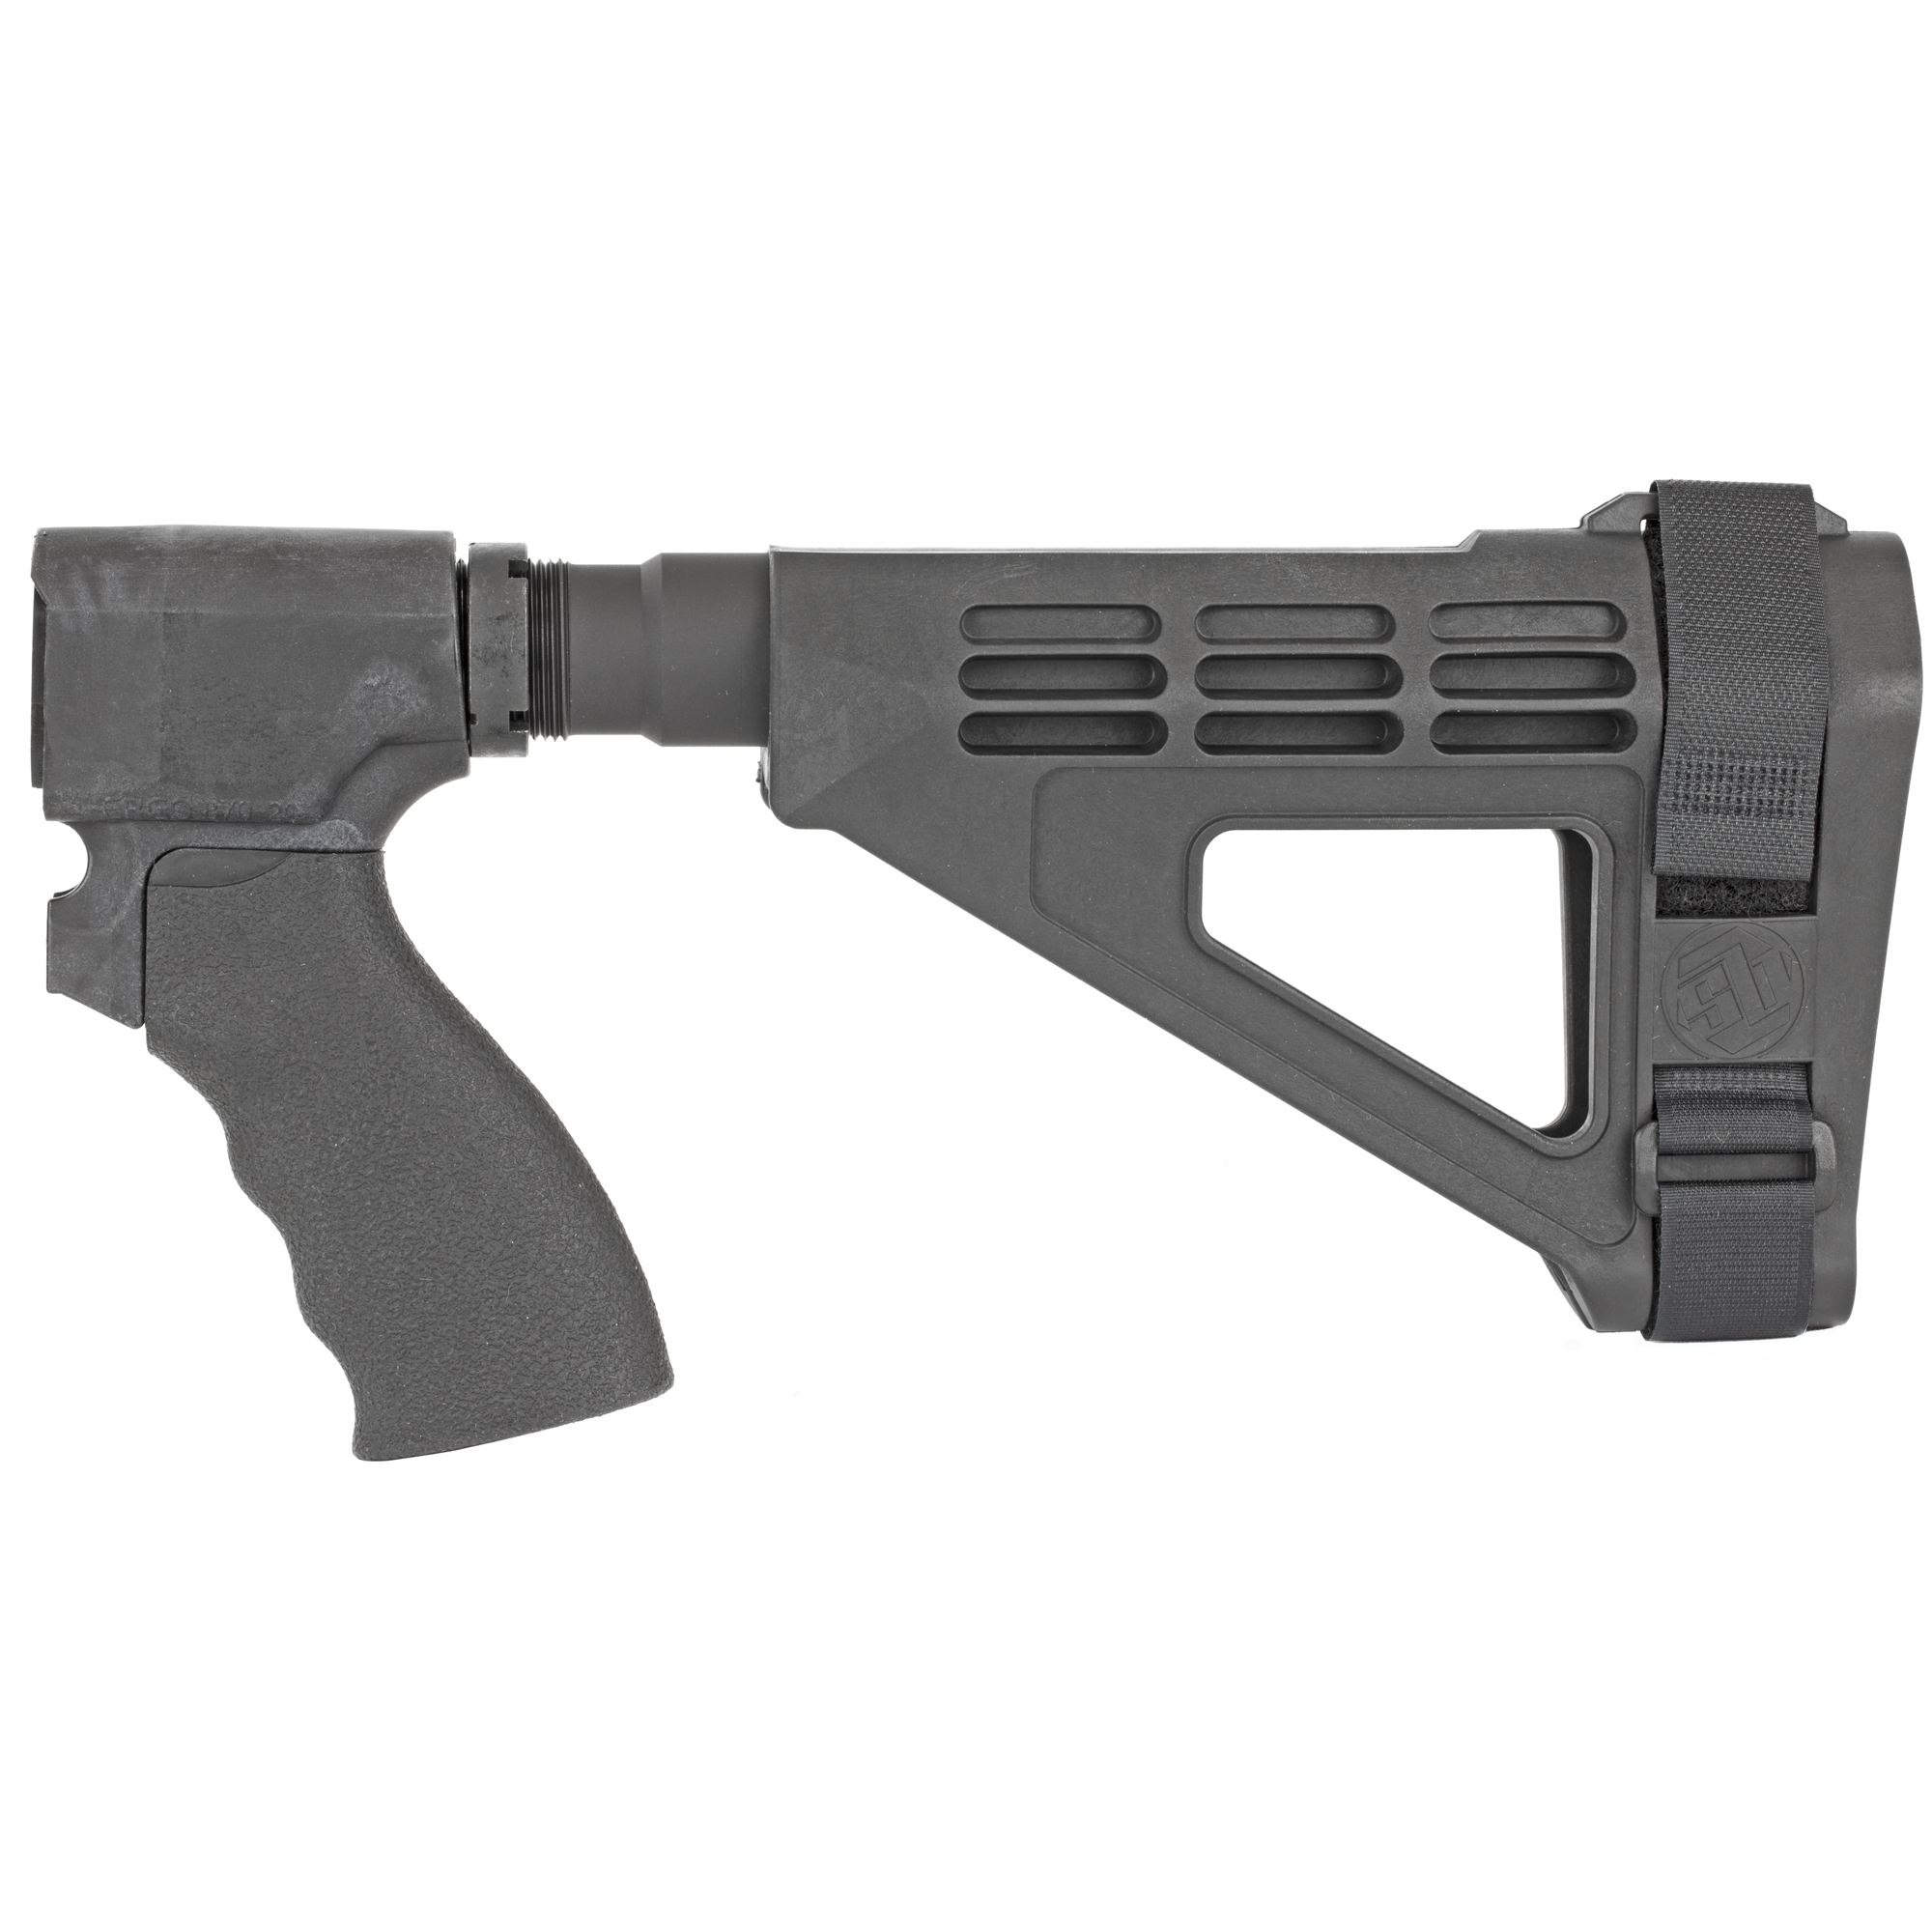 A complete kit ready-to-assemble on your Remington Tac-14 greatly enhancing the usability of the firearm by adding a third point of contact for stabilization. This is a 20 gauge kit which includes the following-SBM4 Pistol stabilizing brace STOT-C pistol receiver extension Ergo flat top Suregrip Ergo Remington 870 adapter castle nut and adjustable nylon strap.